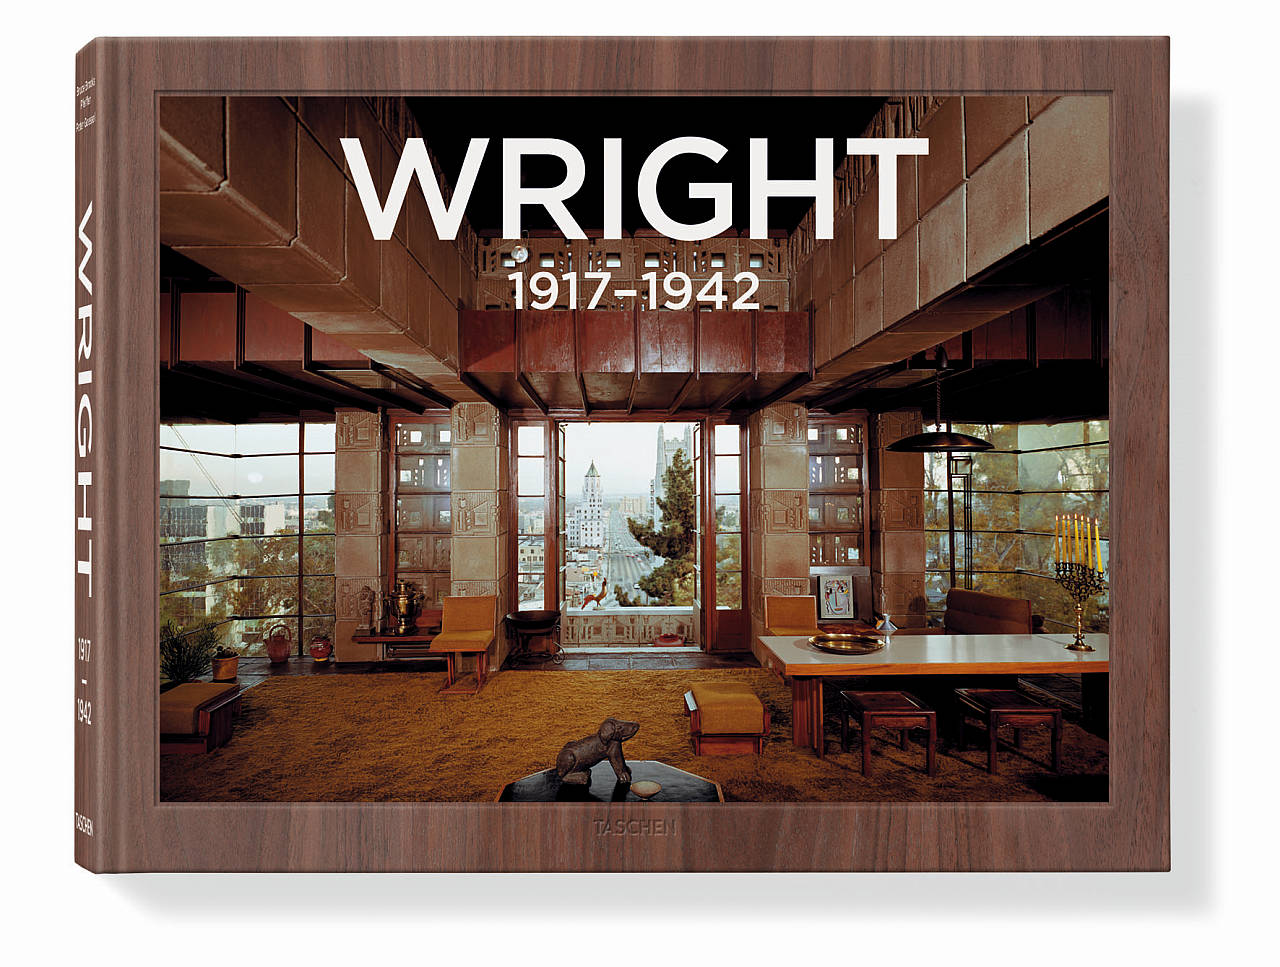 Frank Lloyd Wright. Complete Works. Vol. 2, 1917–1942 - Bruce Brooks Pfeiffer, Peter Gössel, Tapa dura, 40 x 31 cm, 488 páginas : Cover © TASCHEN